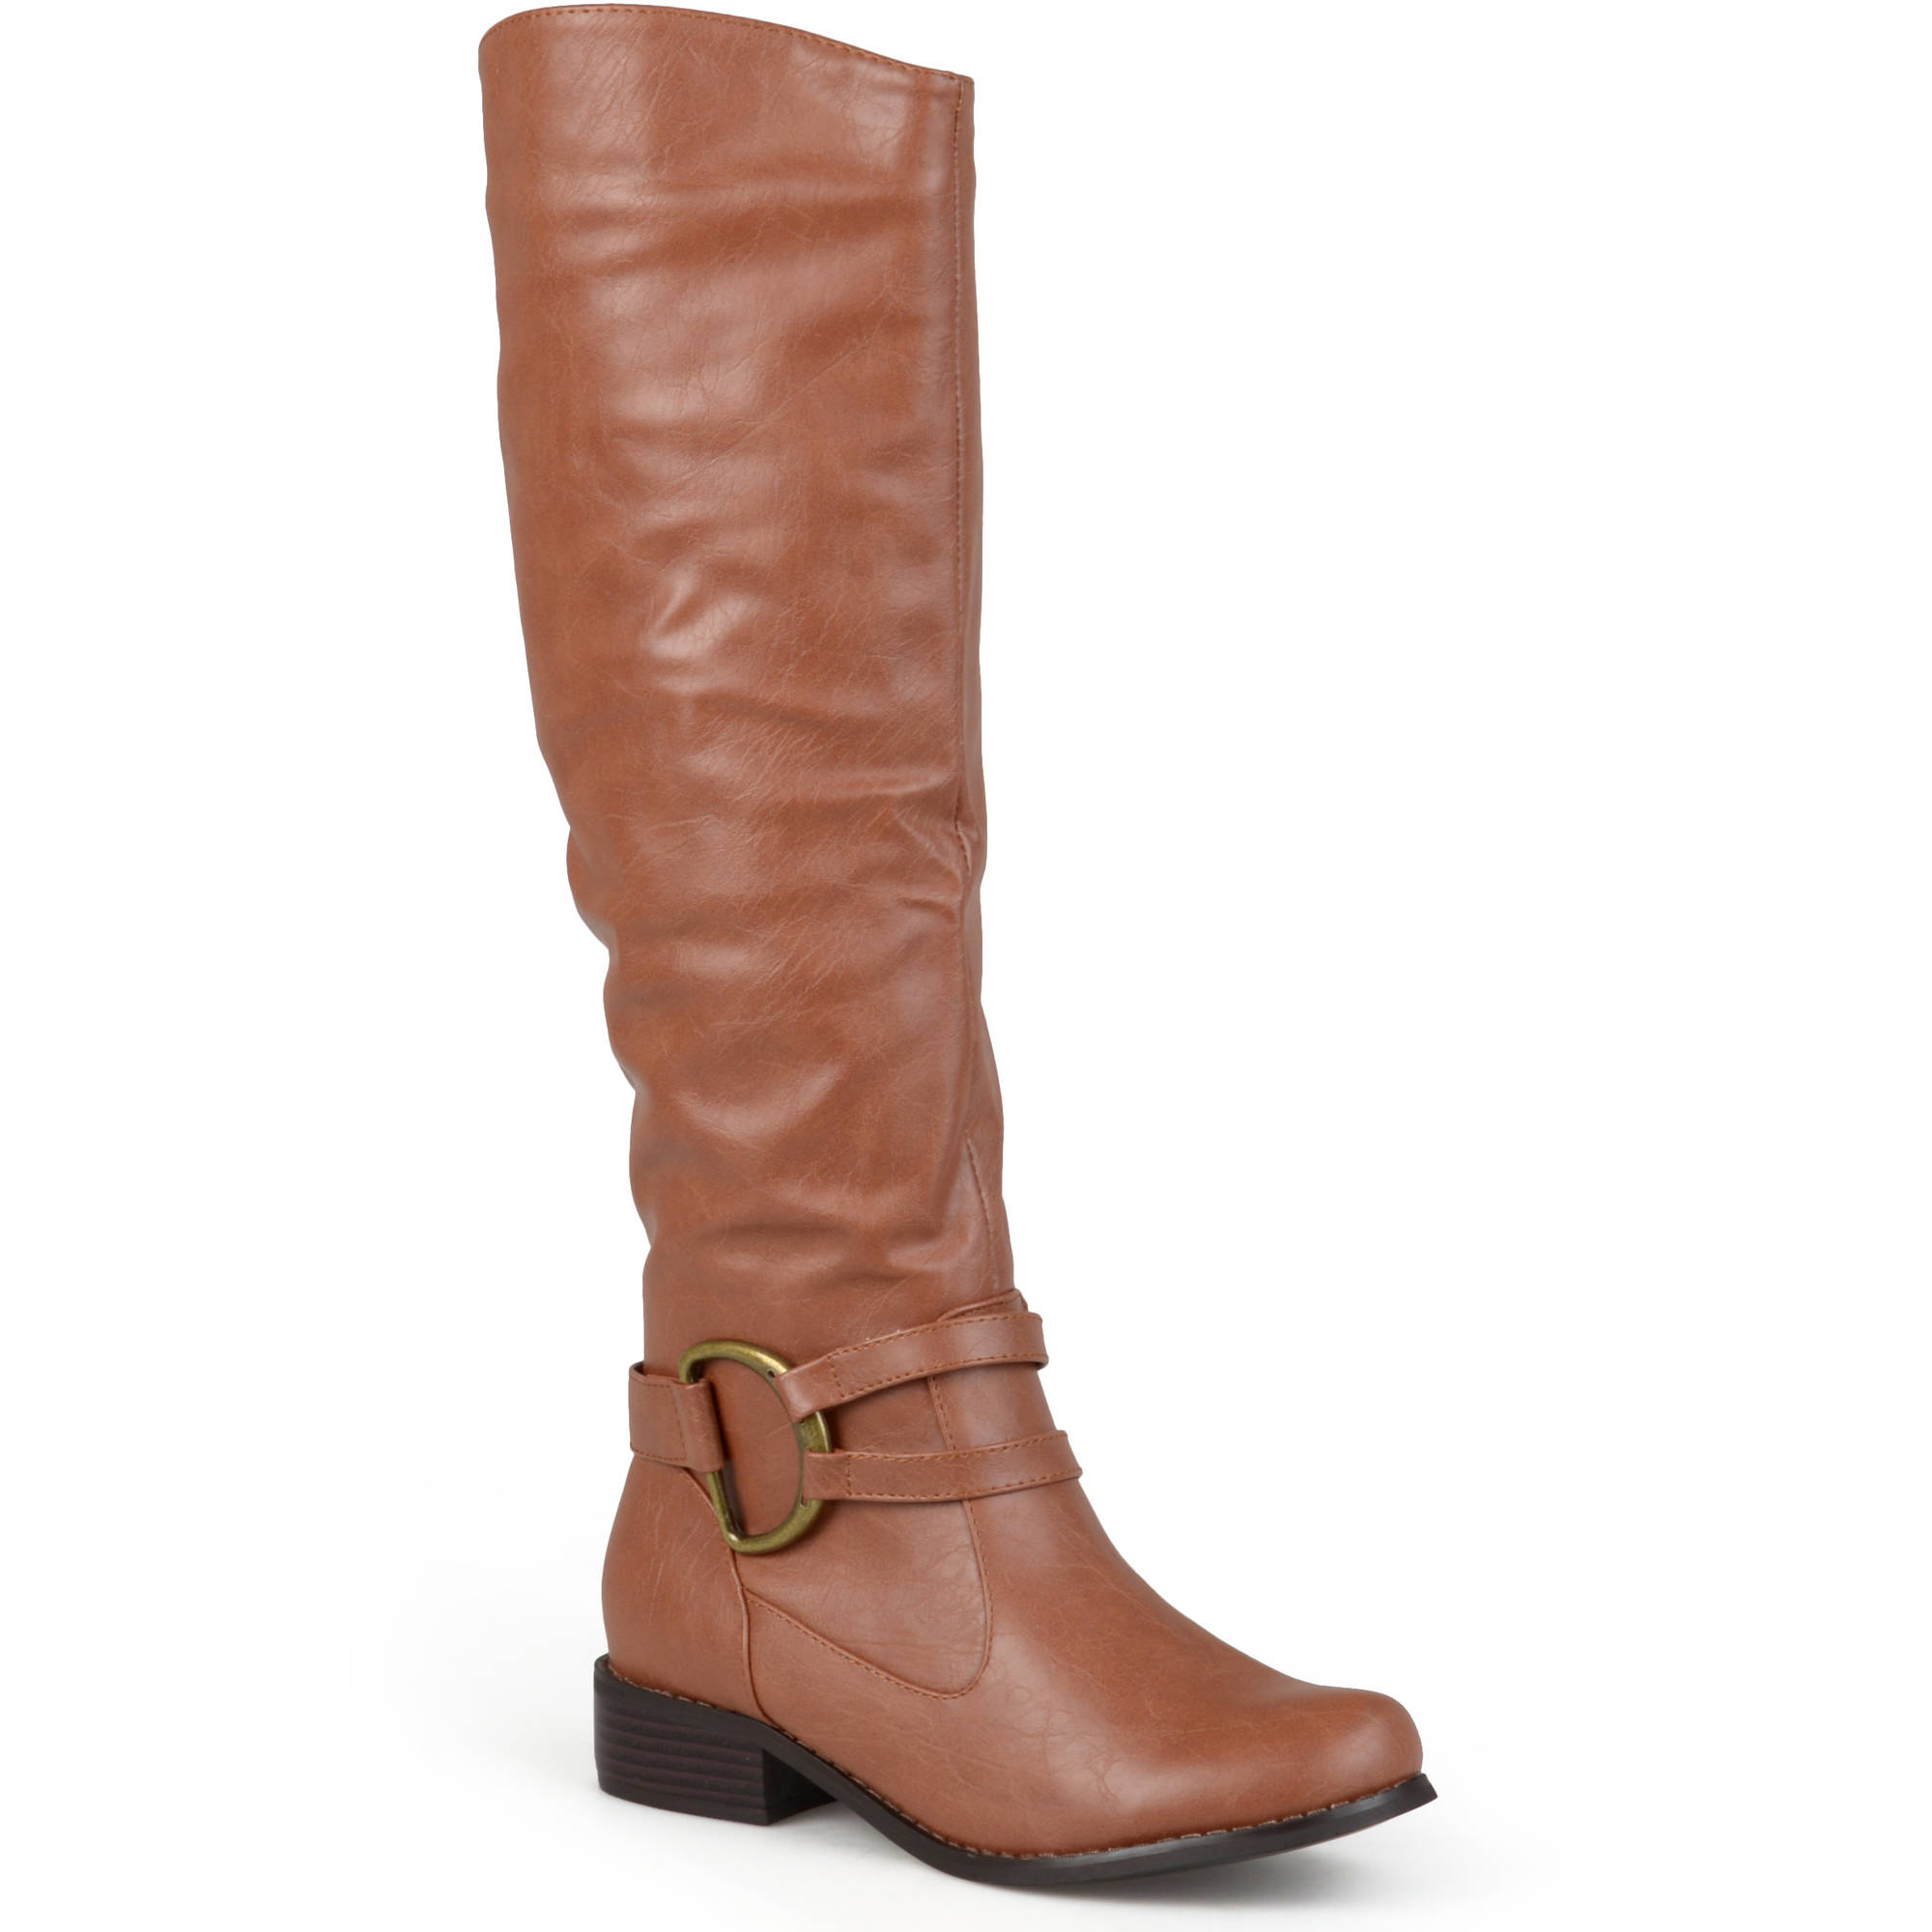 Brinley Co. Women's Ring Accent Wide Calf Boots